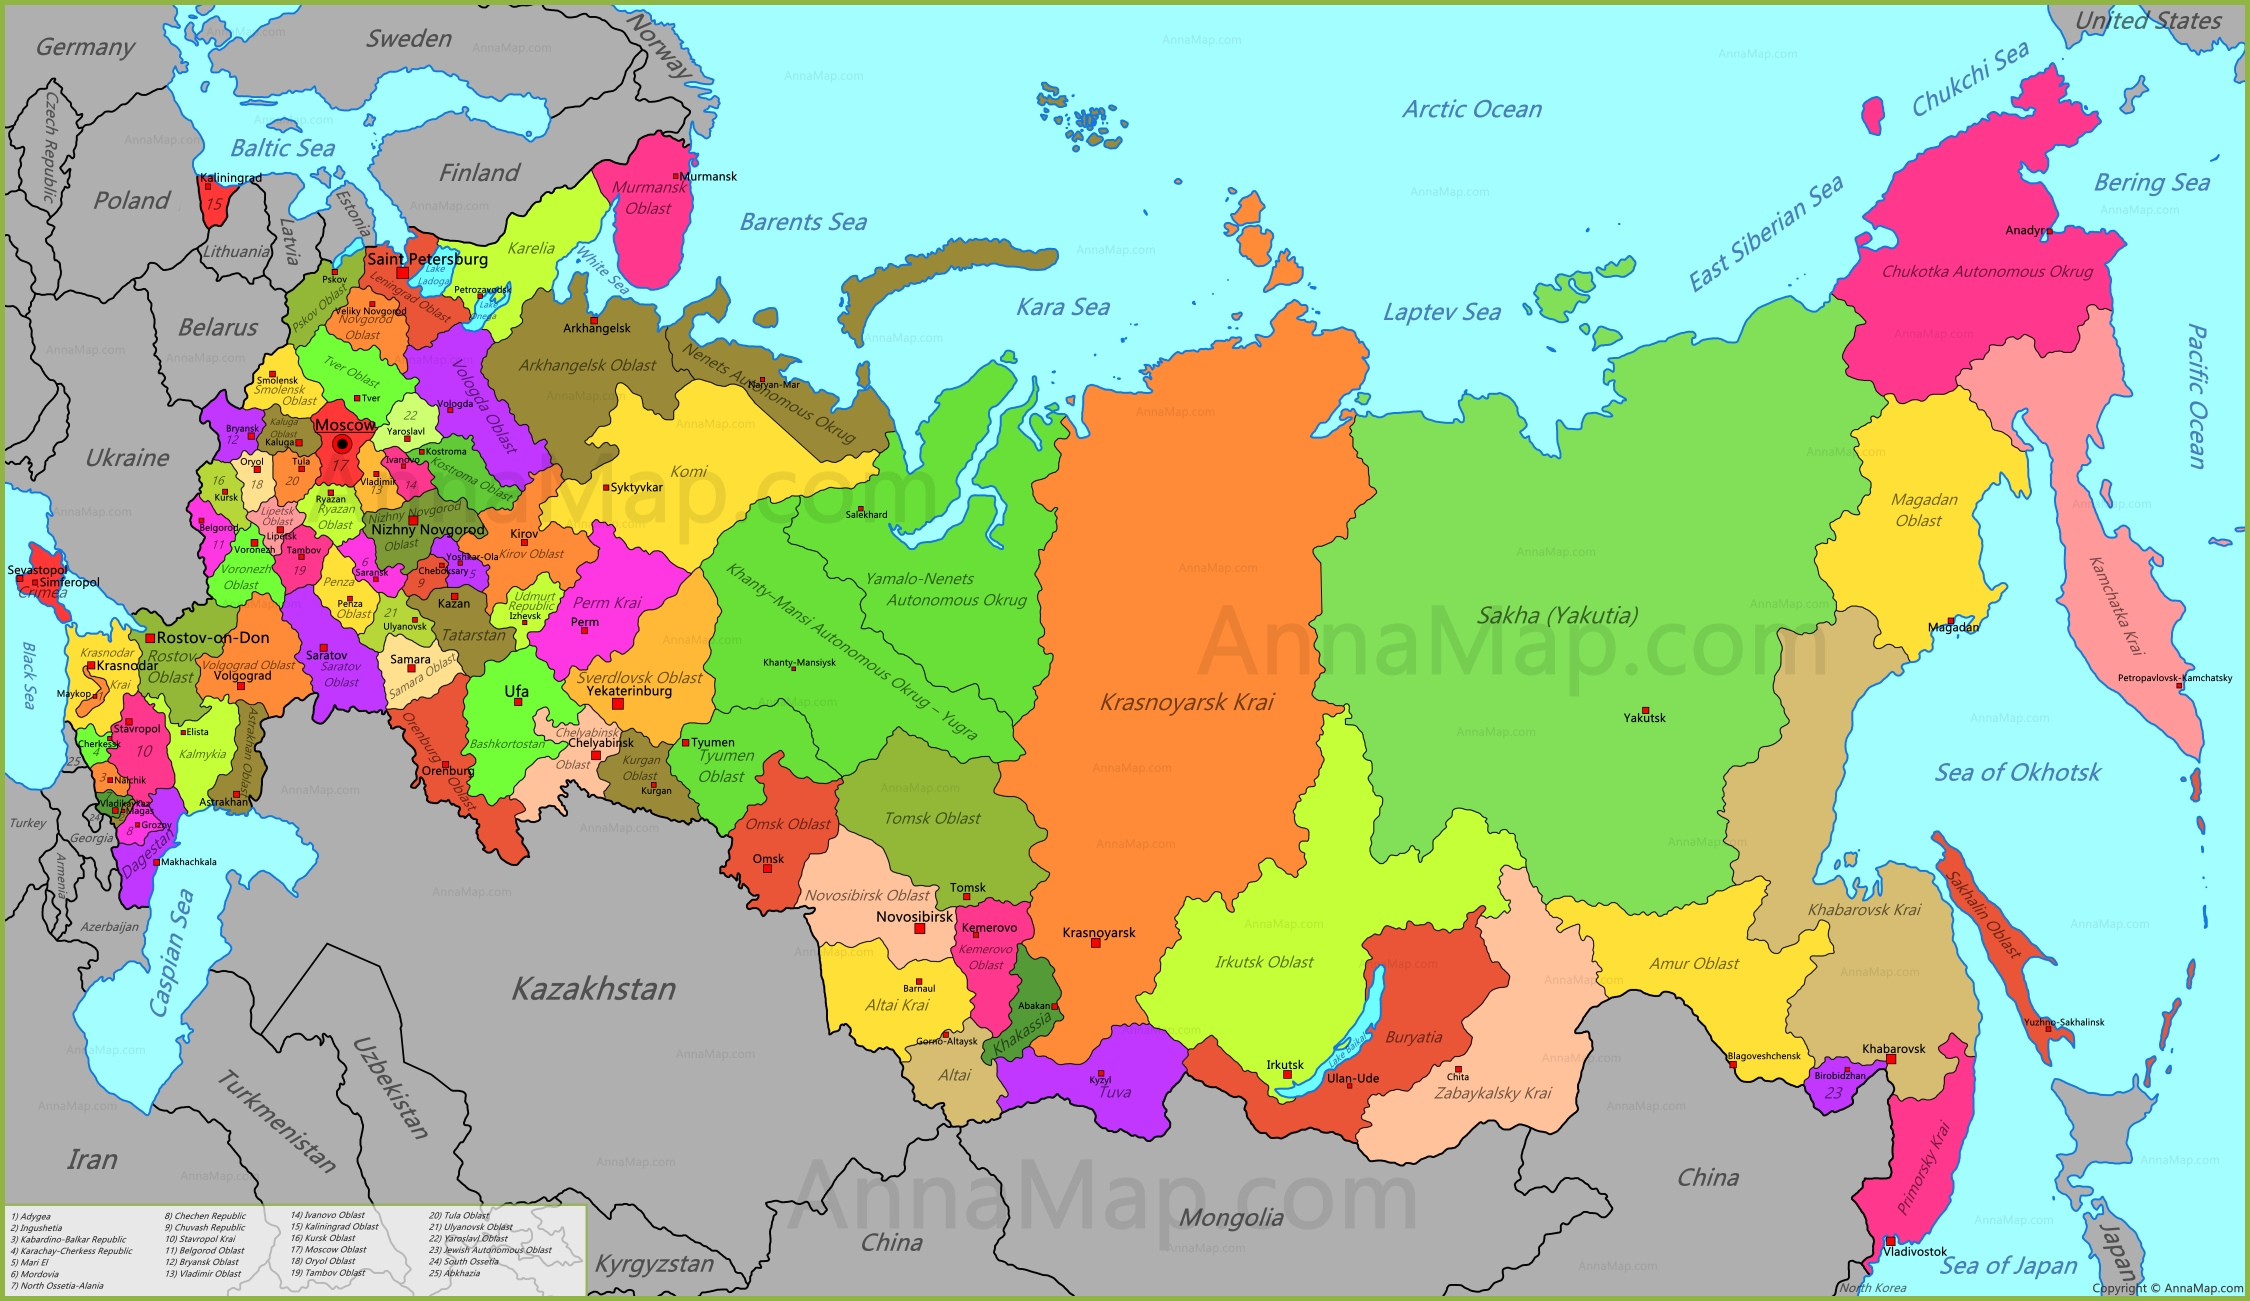 Russia Map | Map of Russia (Russian Federation) - AnnaMap.com